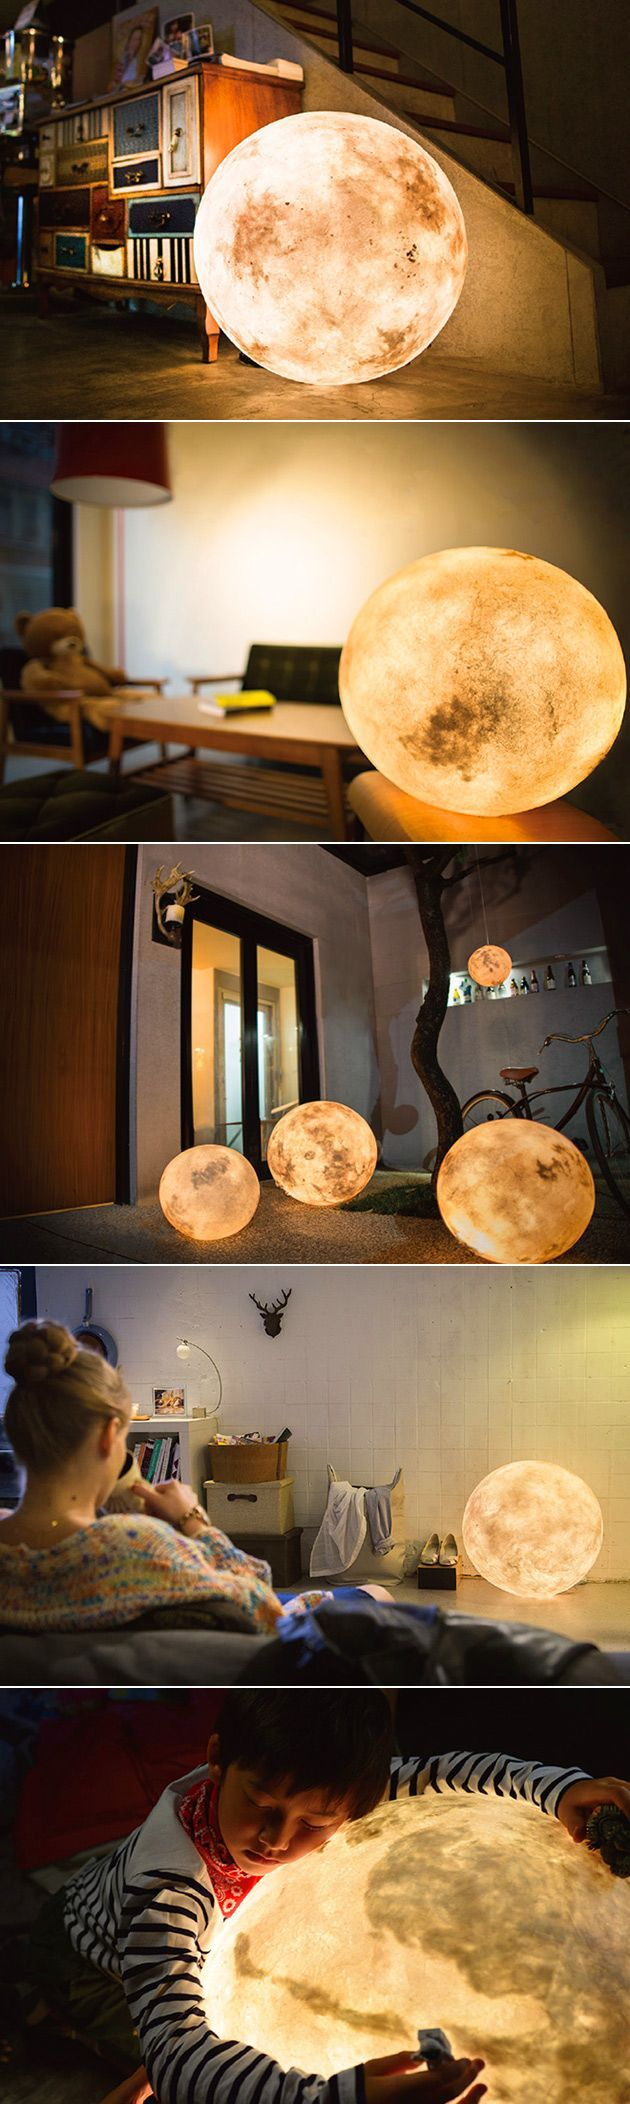 Enter Luna, a little ball of light designed to look like the moon. Luna can ill...